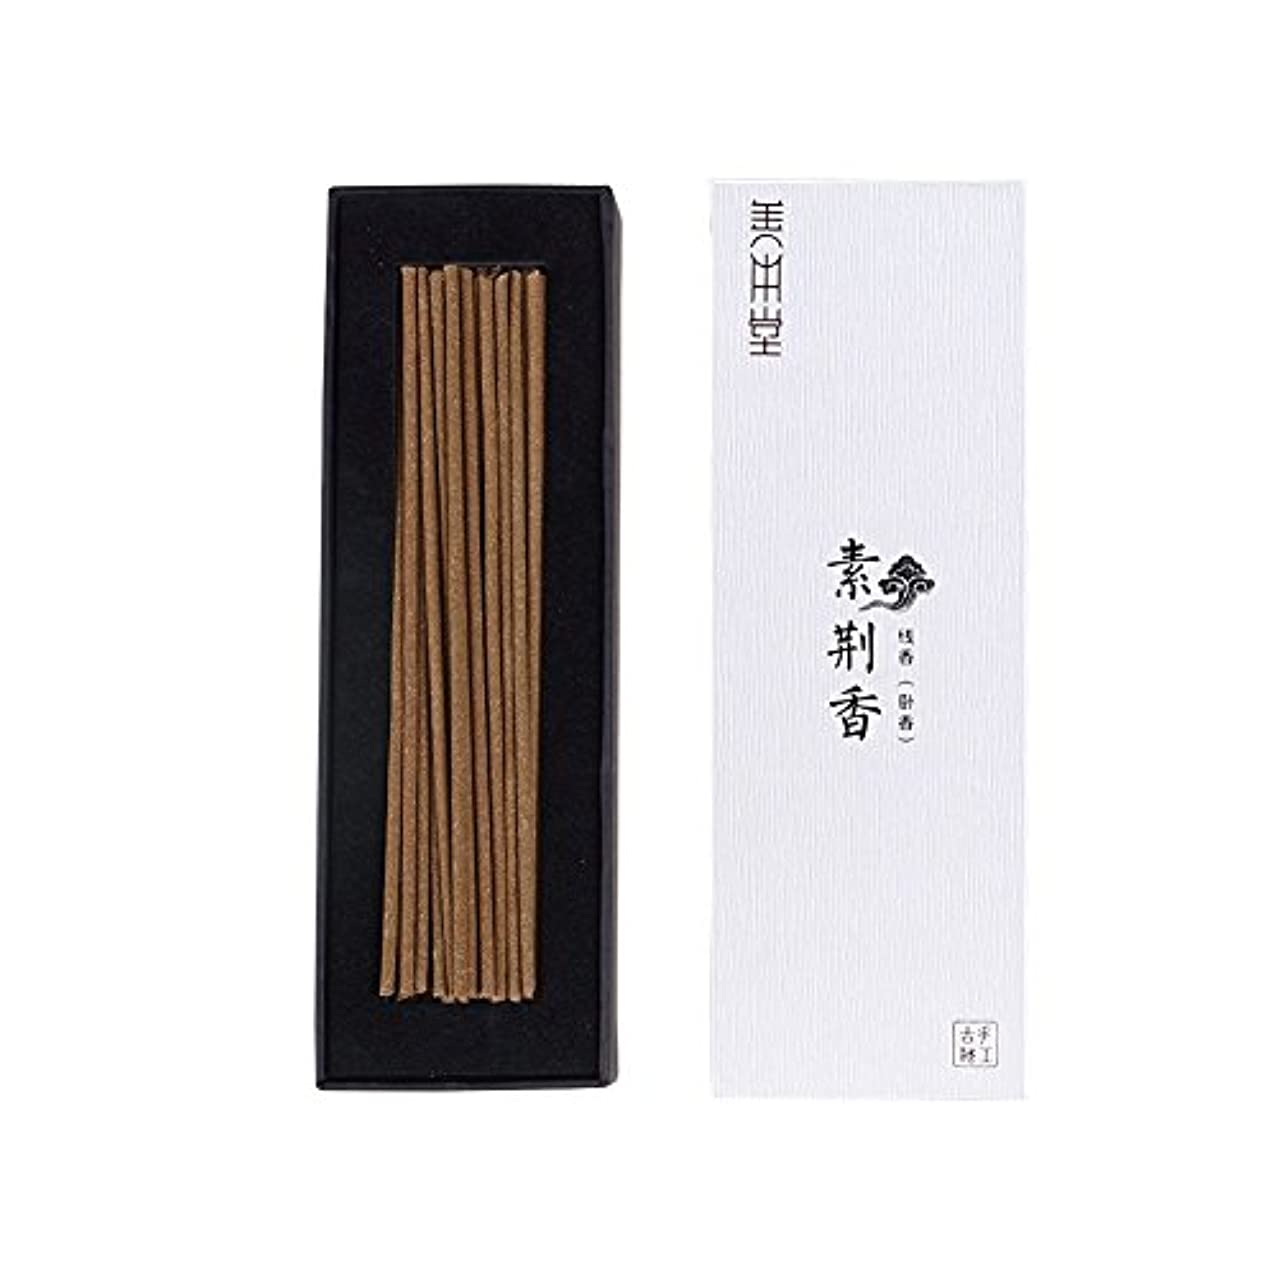 shanbentang Incense Sticks Classical Chinese Incense、古代の知恵、アロマの千年前5.5in